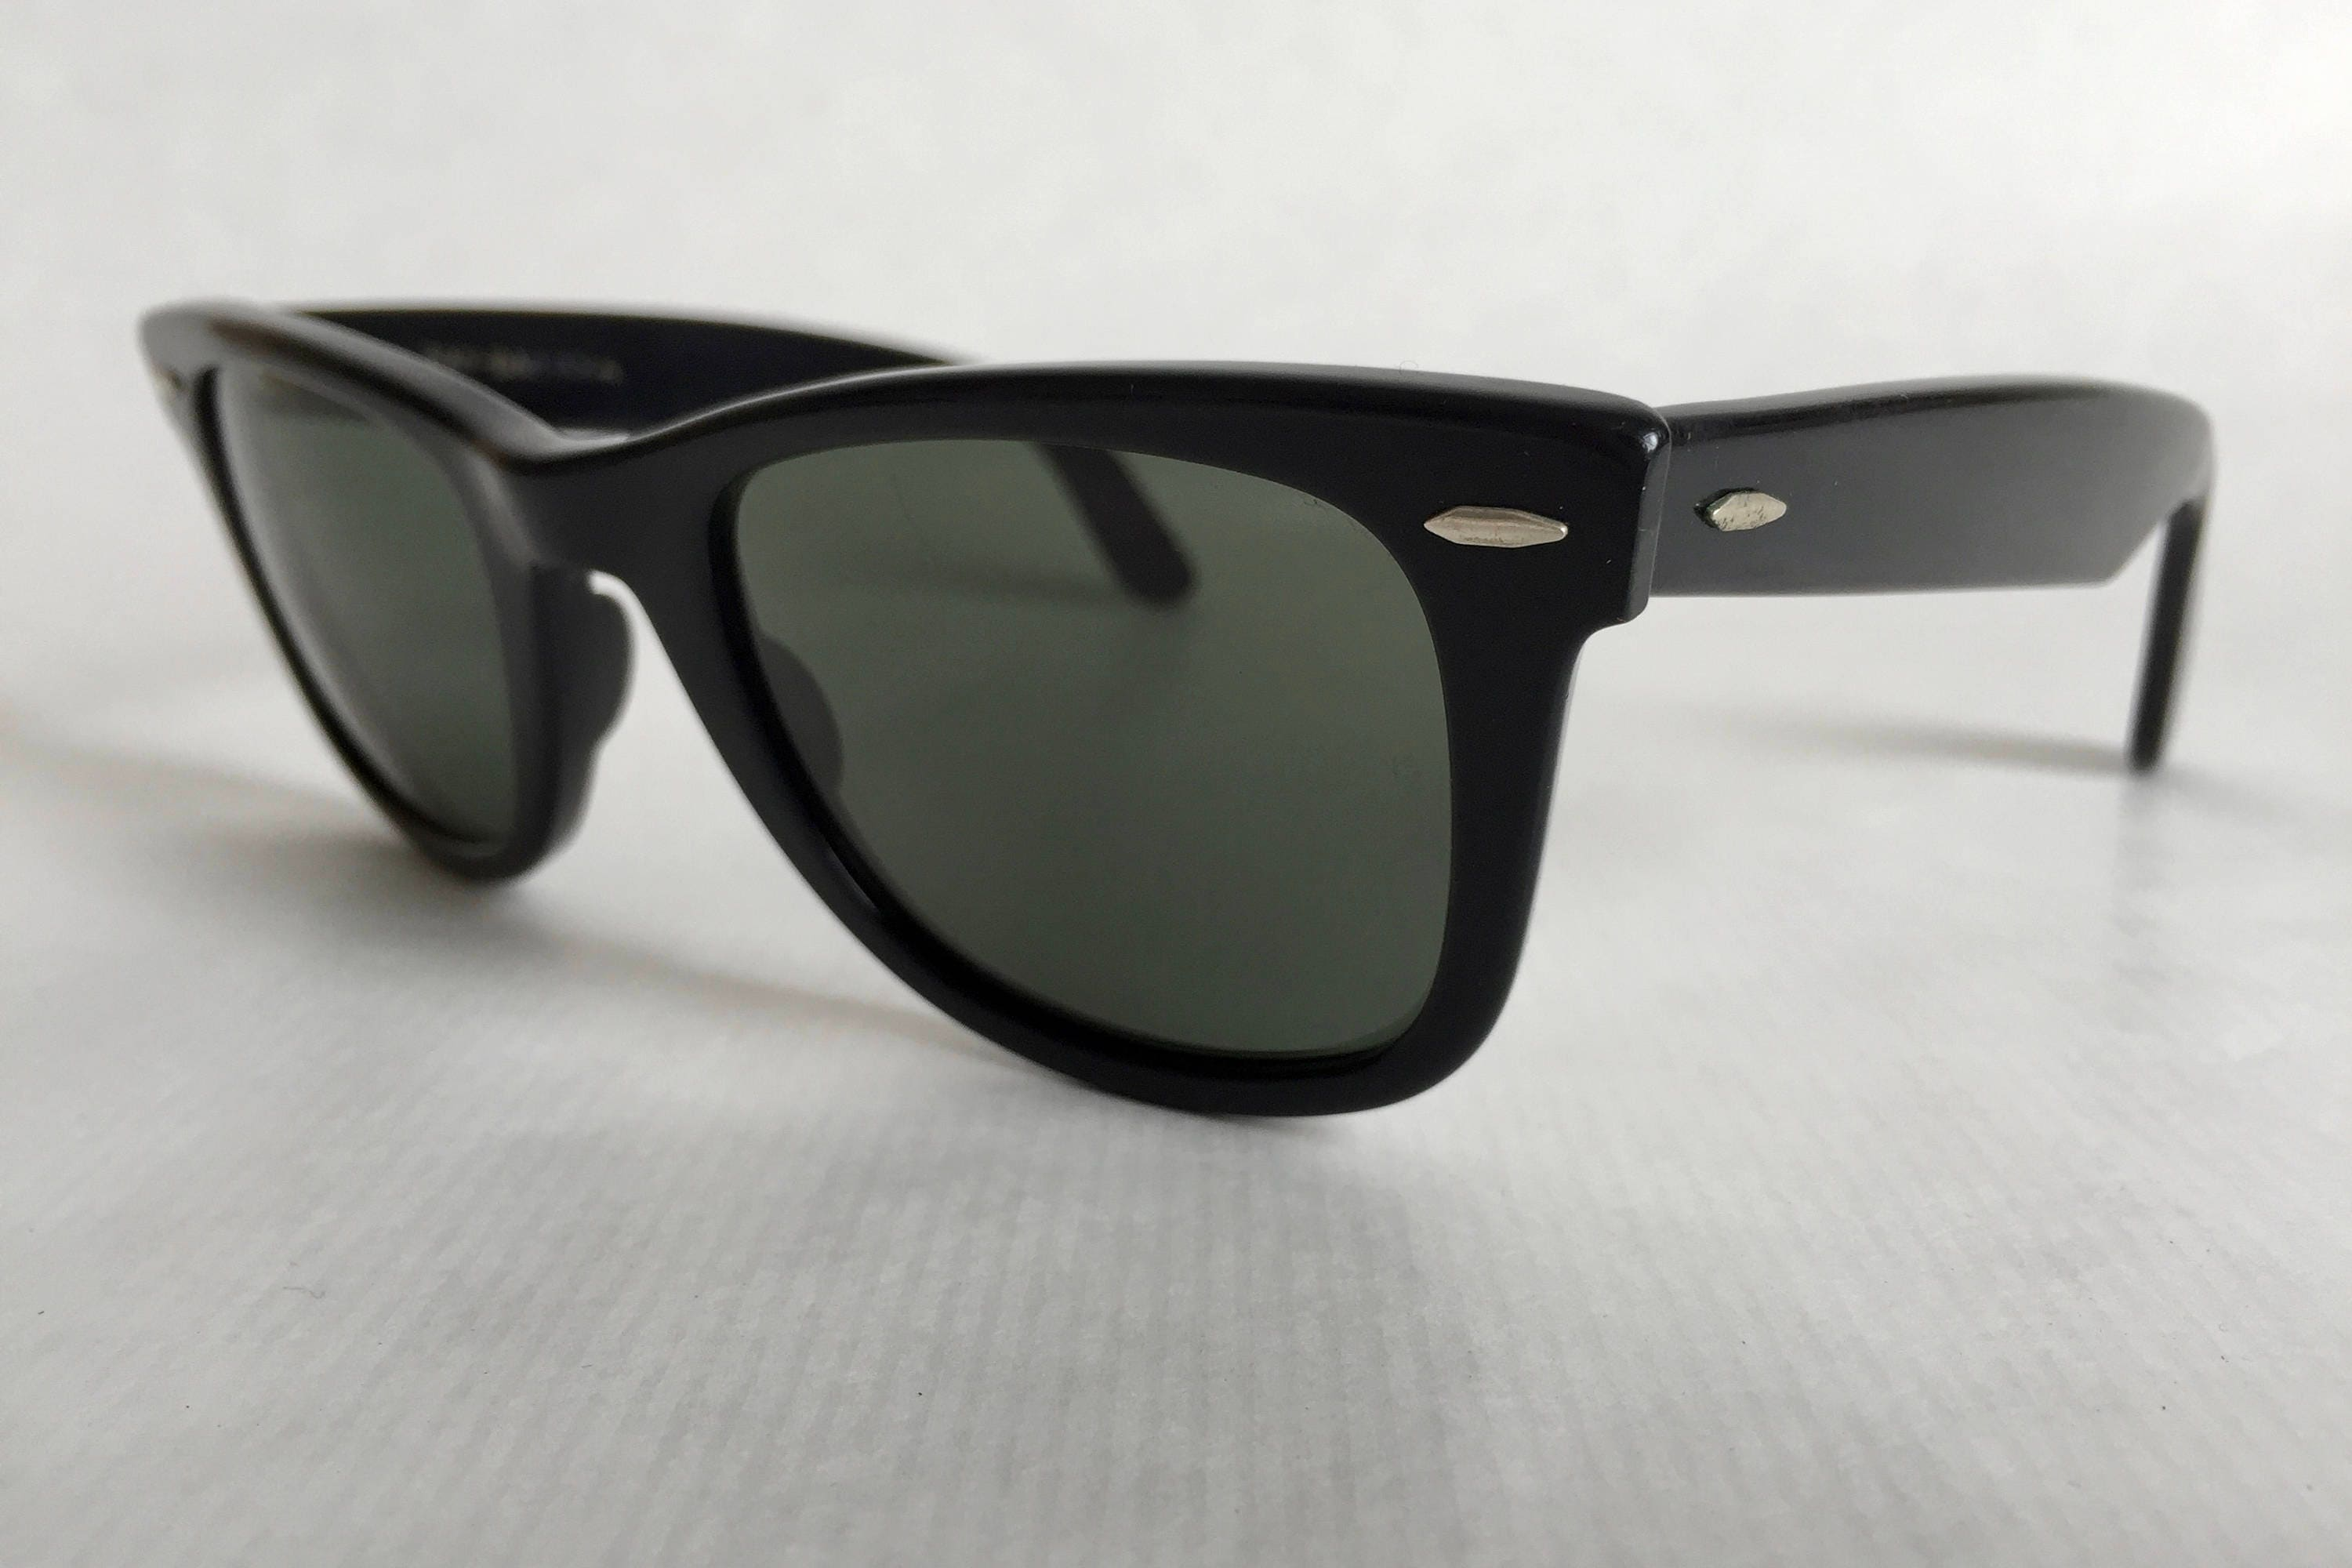 29151024b7 Ray-Ban WAYFARER by Bausch   Lomb Vintage Sunglasses First Generation.  gallery photo gallery photo gallery photo gallery photo gallery photo